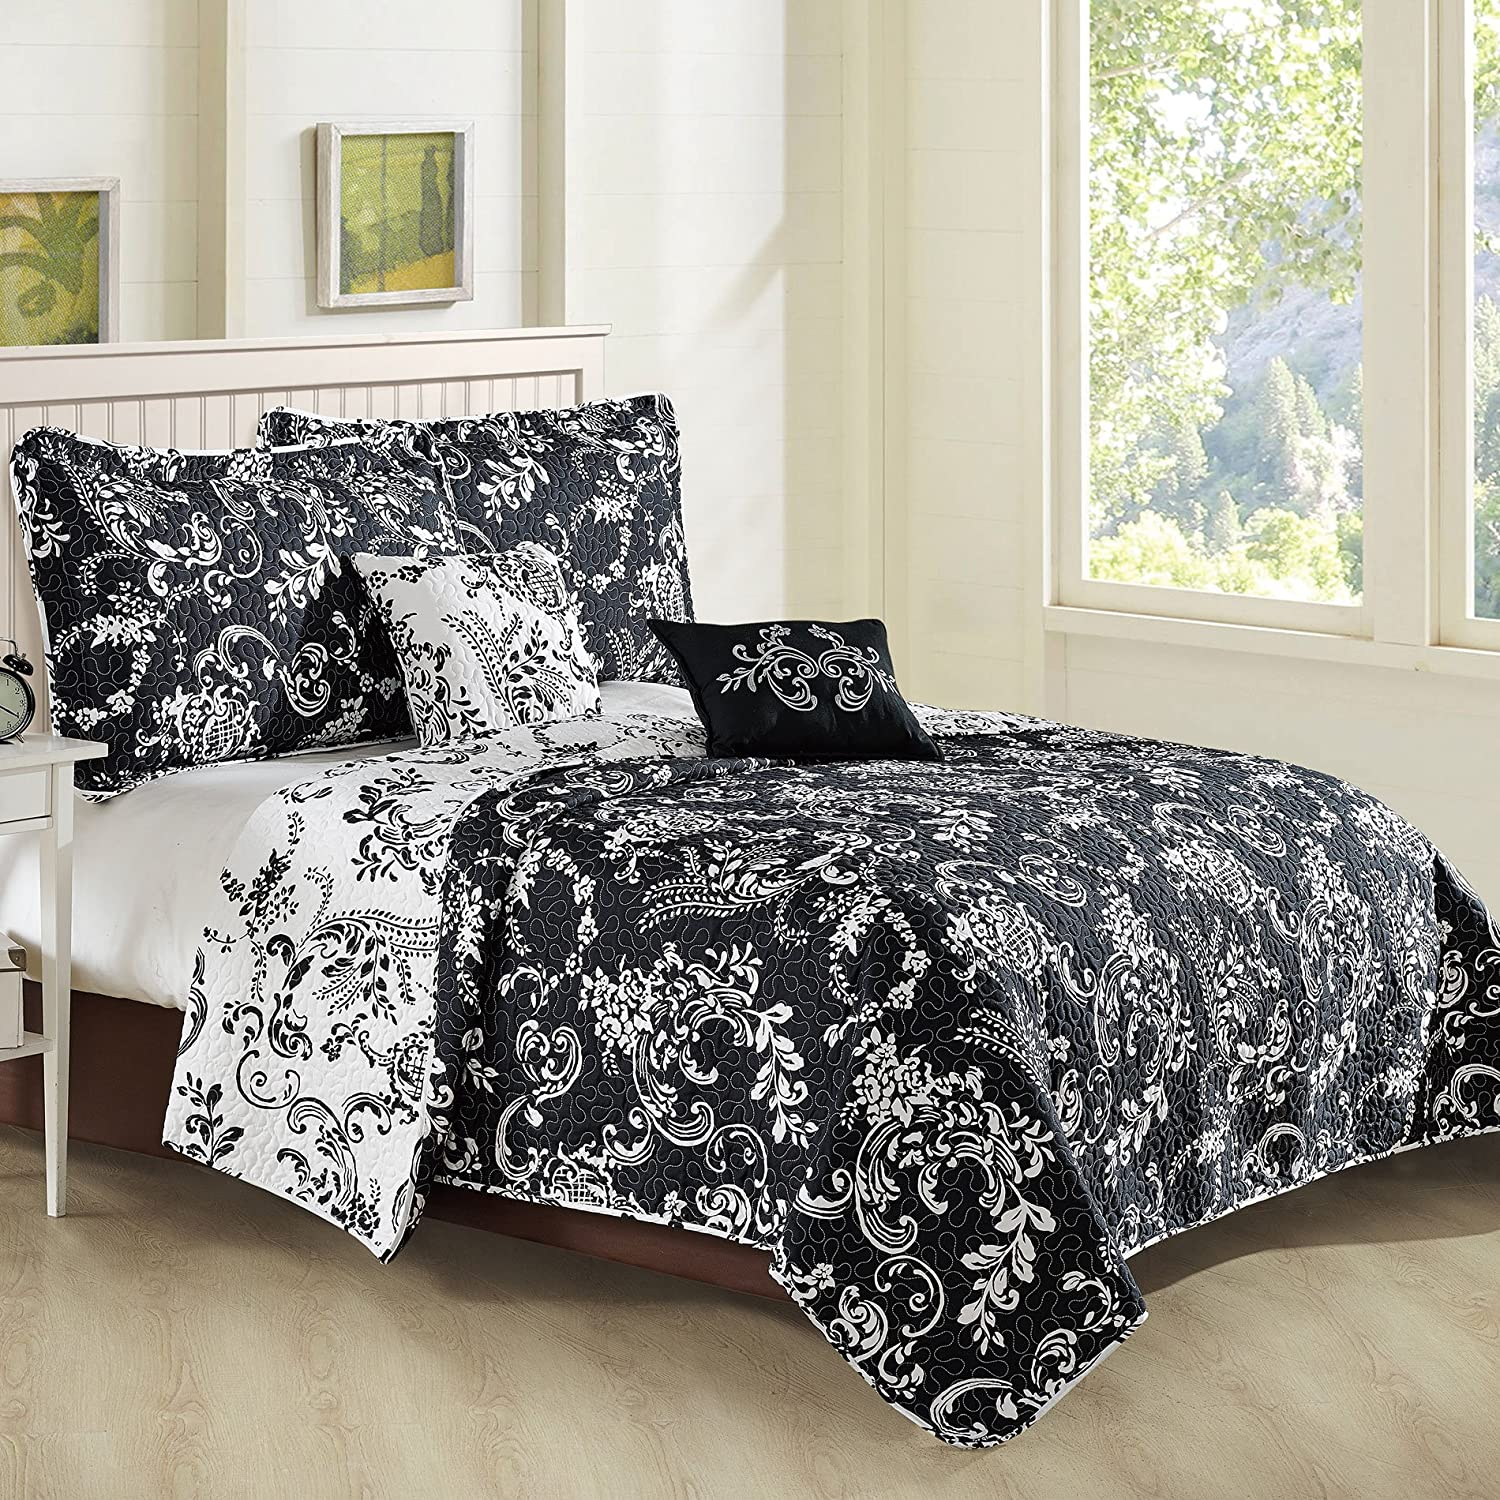 Home Soft Things LA Boheme Bedspread & Coverlet Sets King Coverlet: 102' x 90' Taupe BNF Home BNFPMQ5KLBH